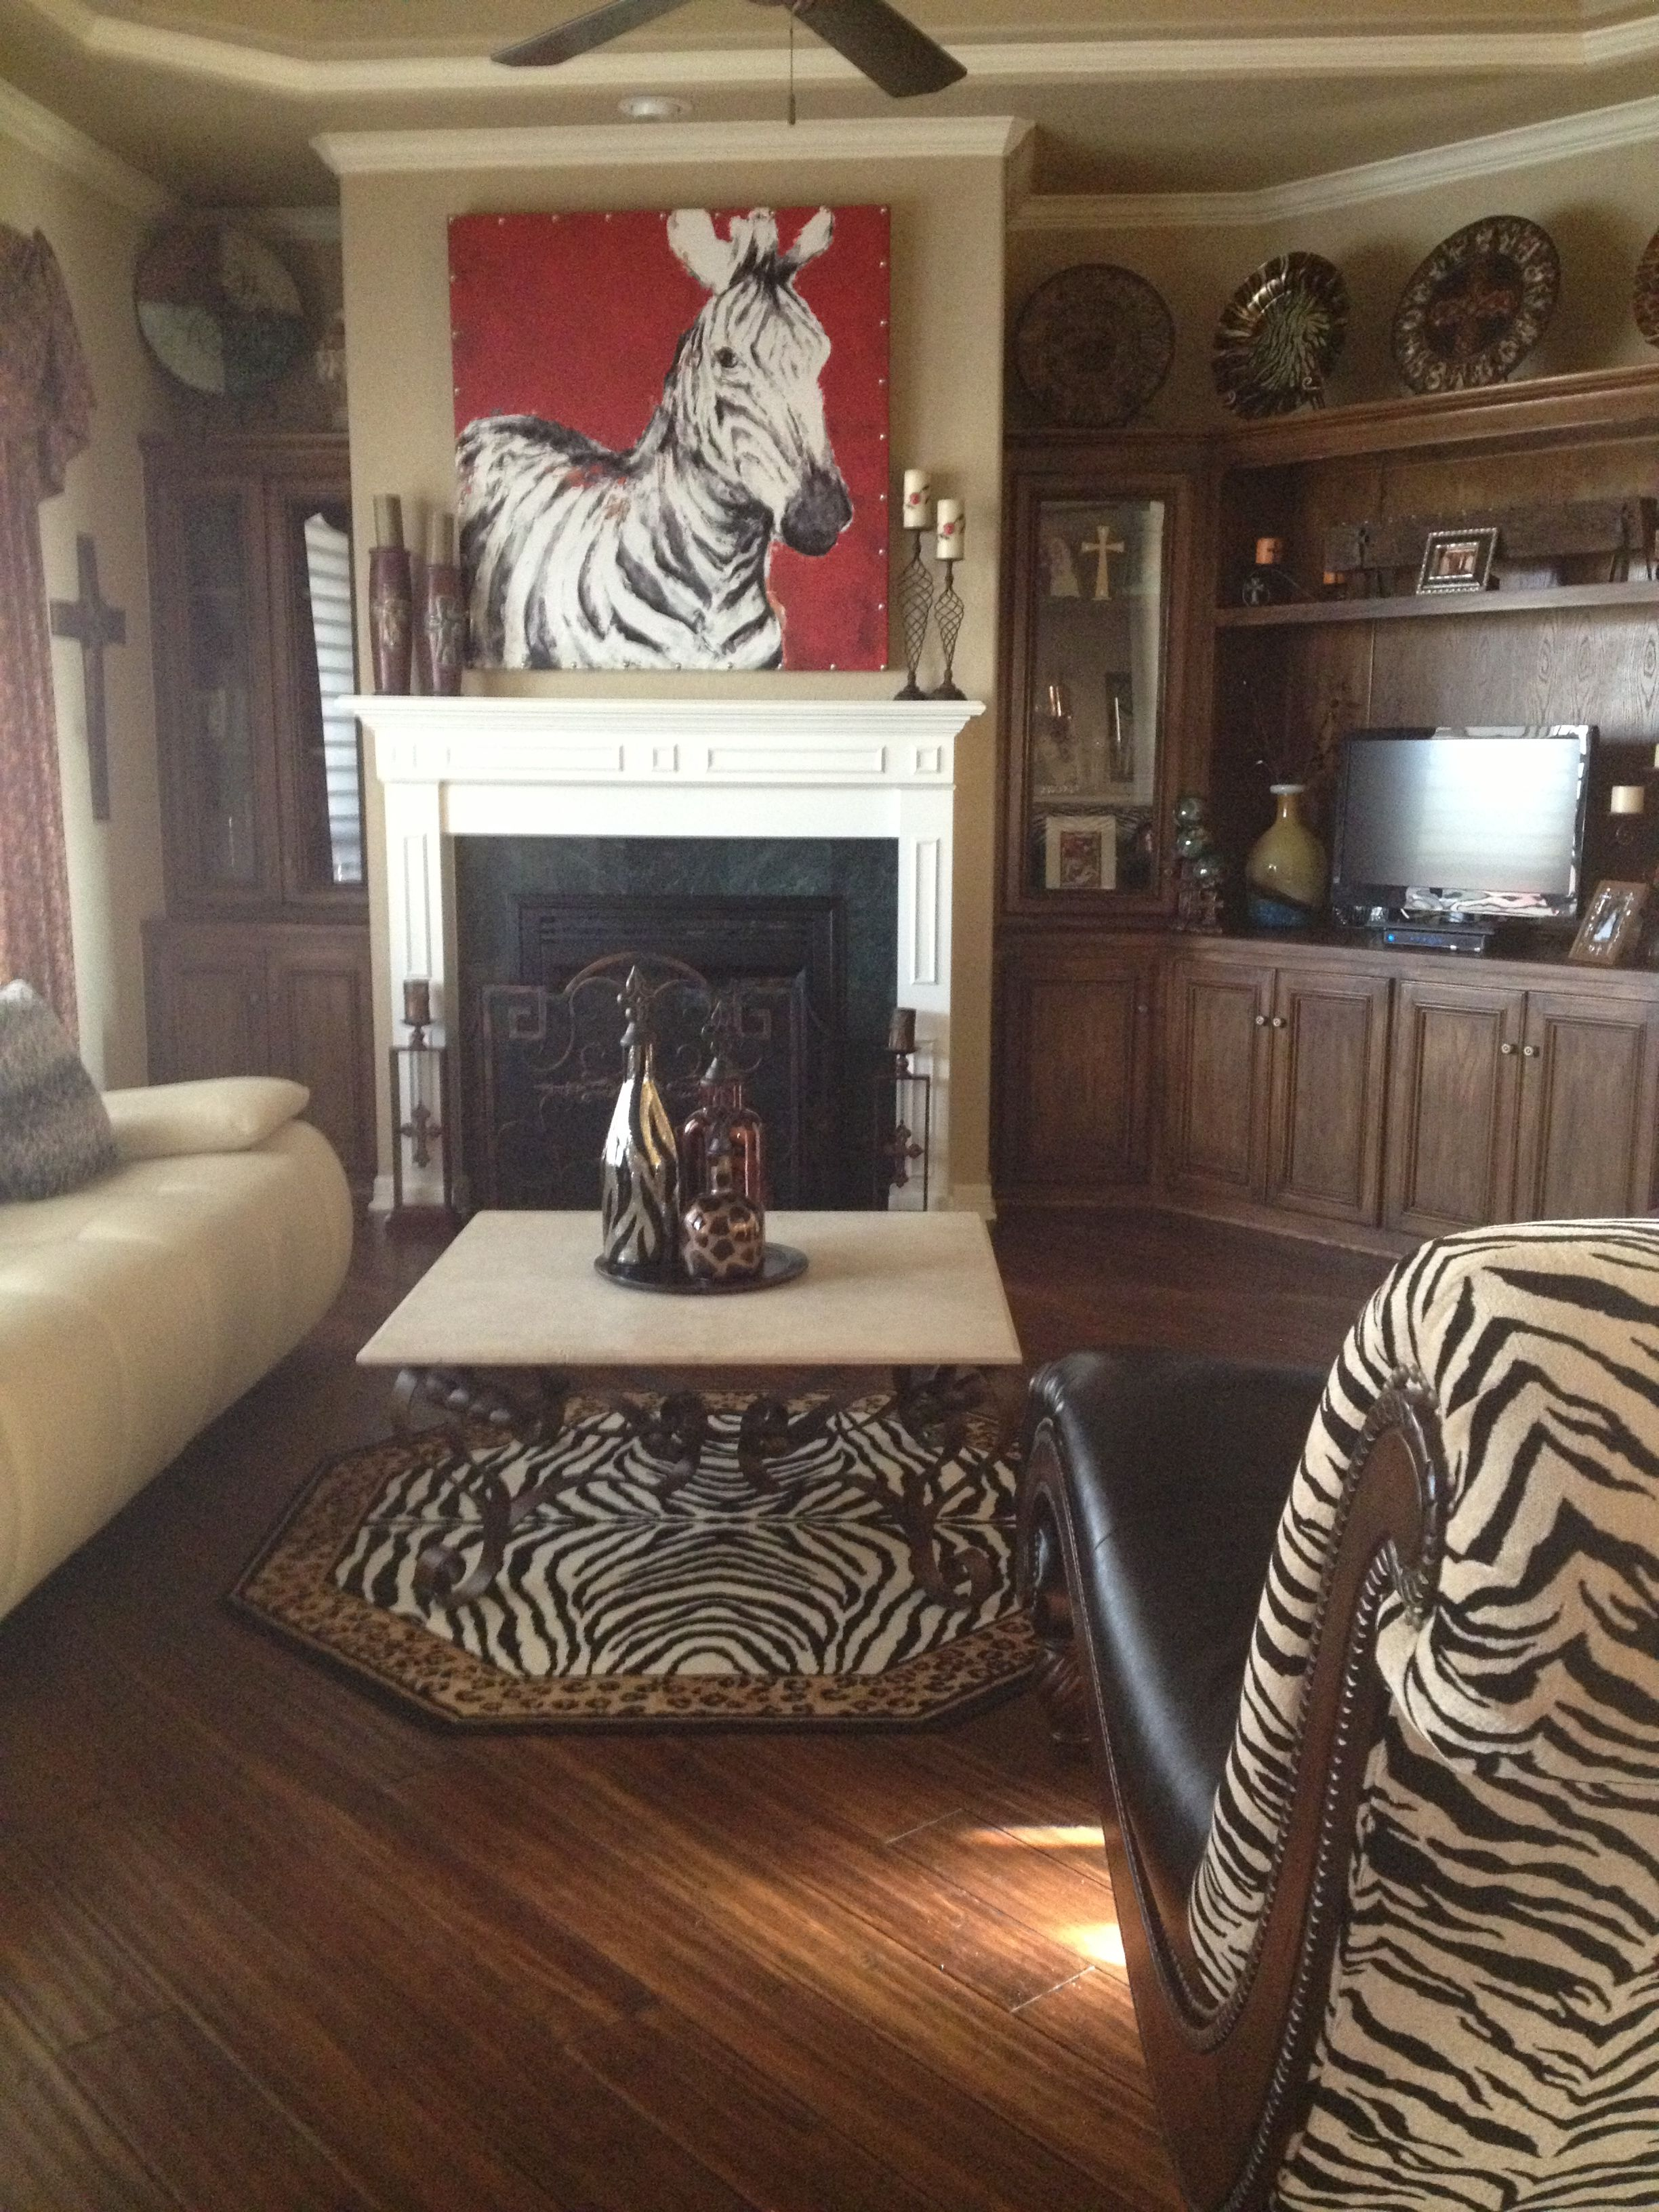 This Is My Zebra Living Room I Love Animal Prints So This Design Was Perfect For Me I Got The Big Painting Fro Zebra Living Room Zebra Decor Living Room Red #pier #one #living #room